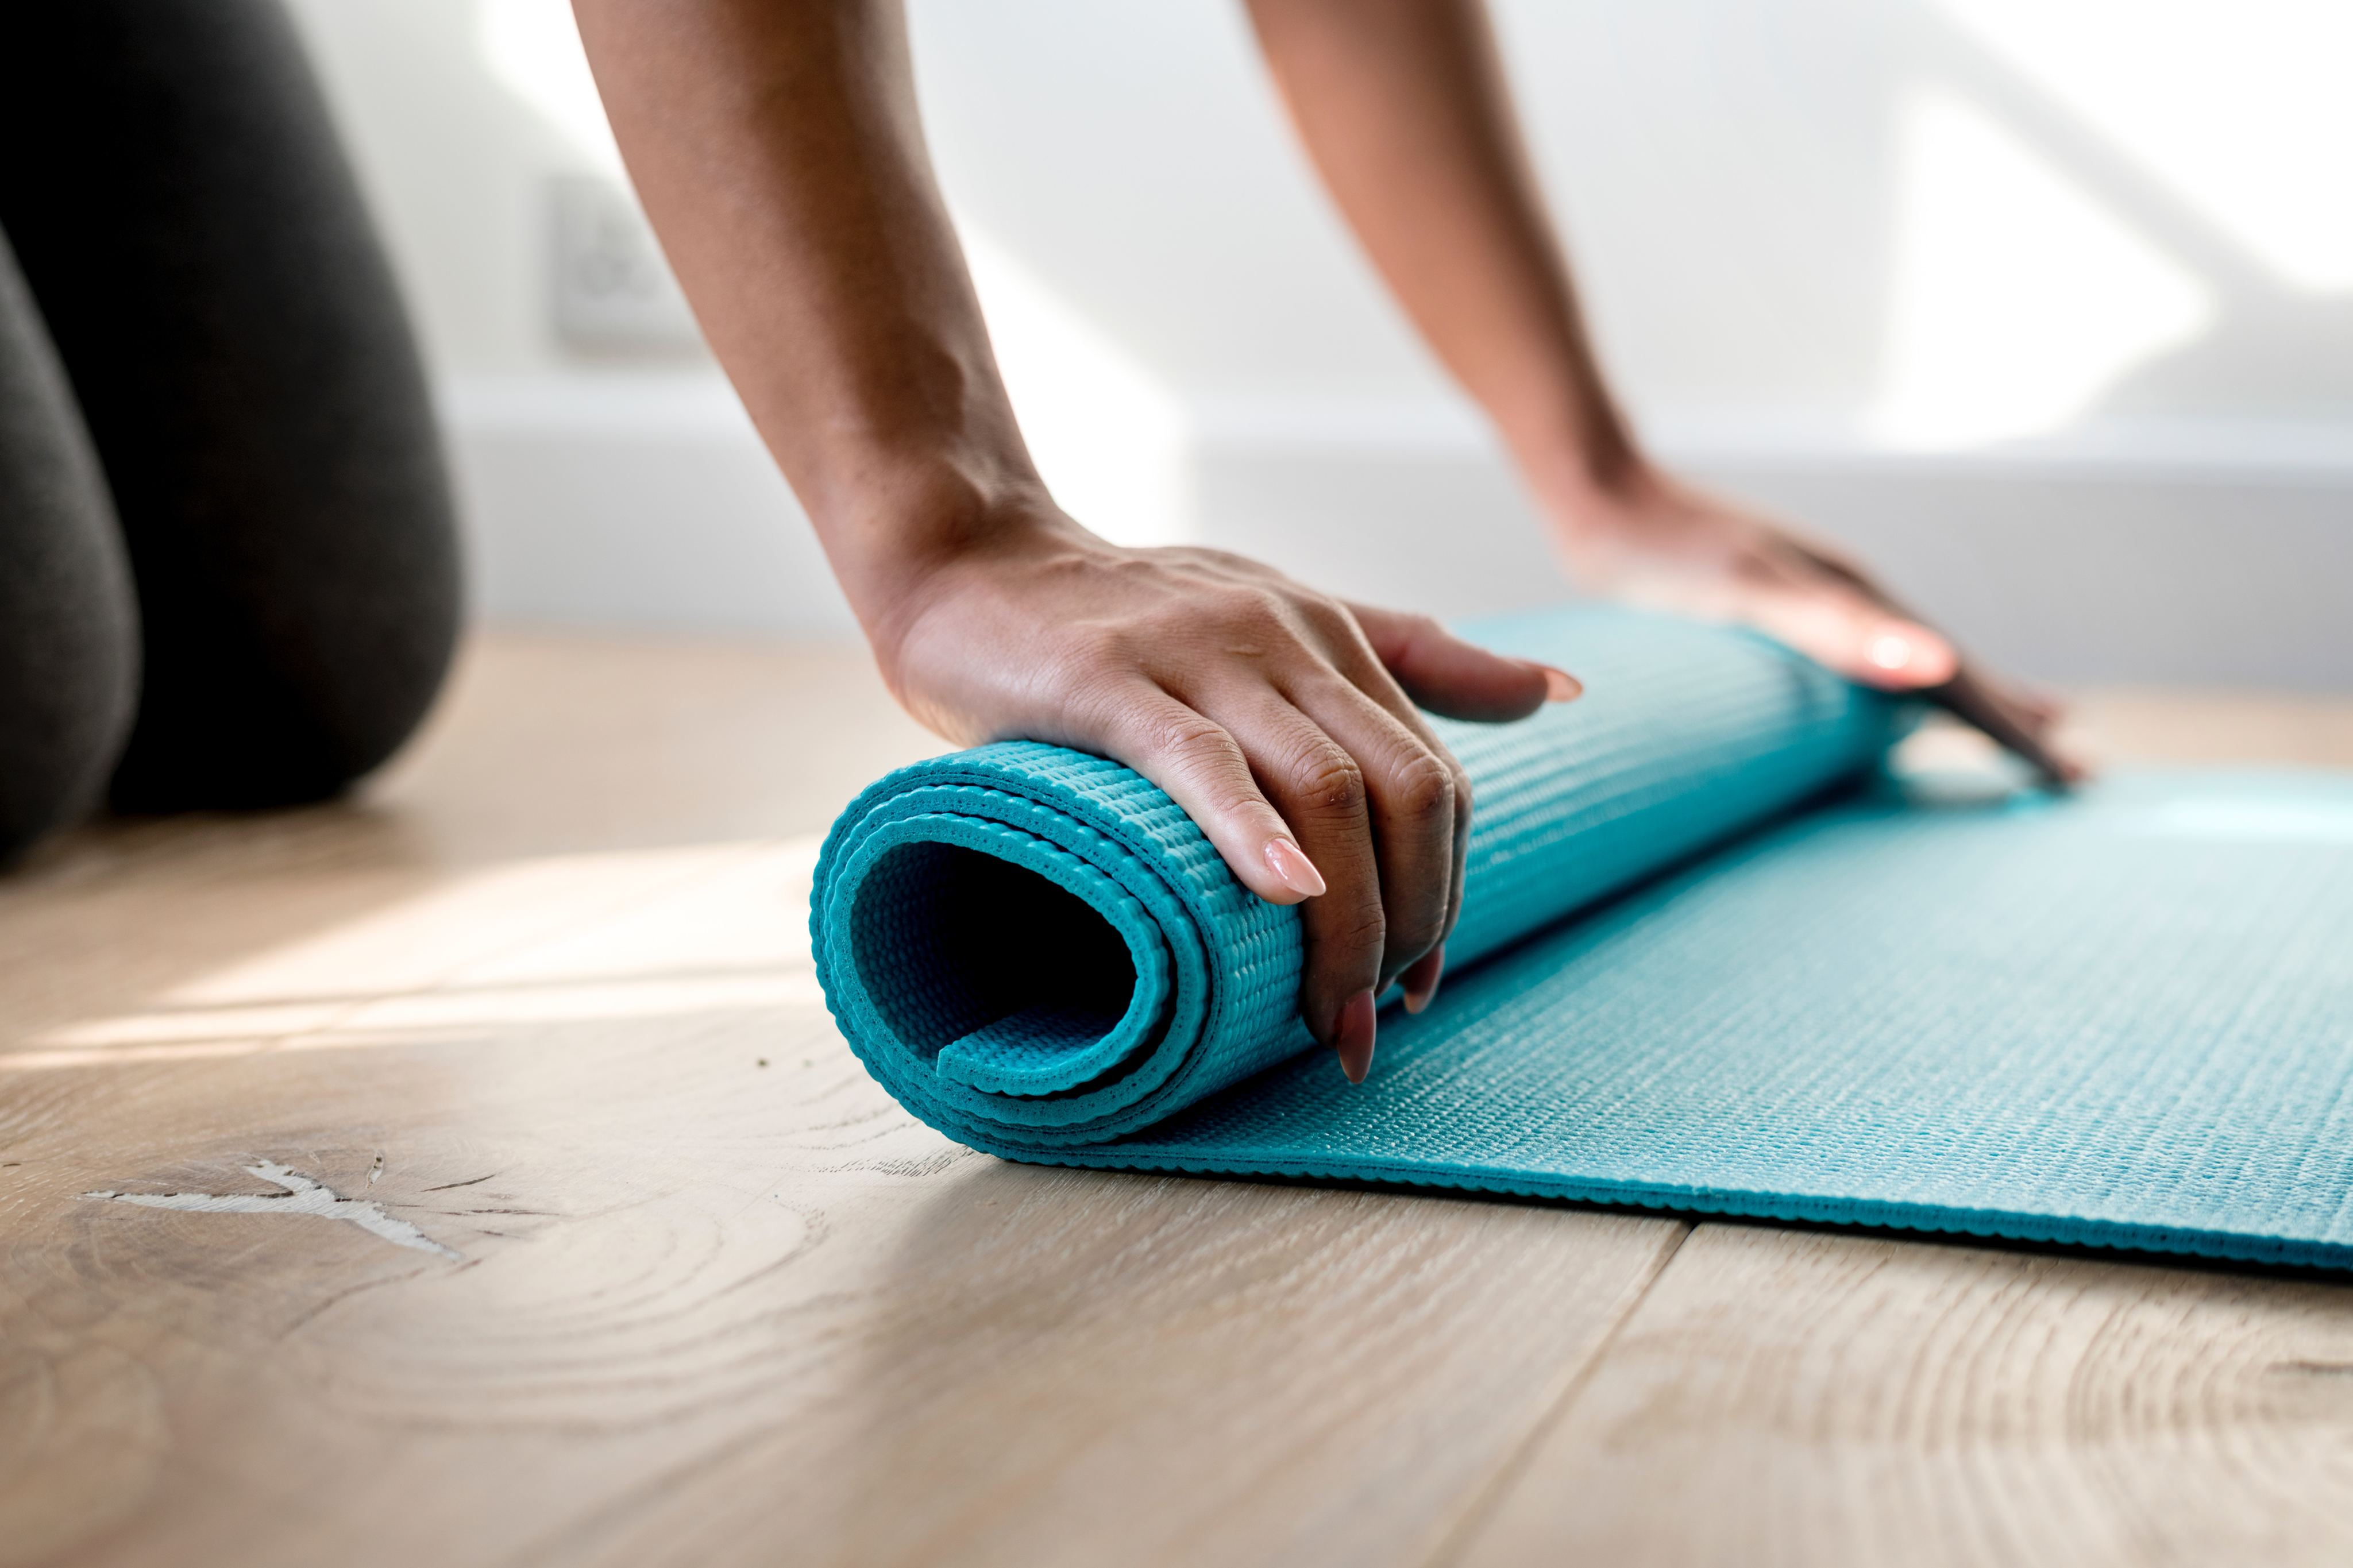 6 Exercises to Do At Home (When You're Snowed In)-image